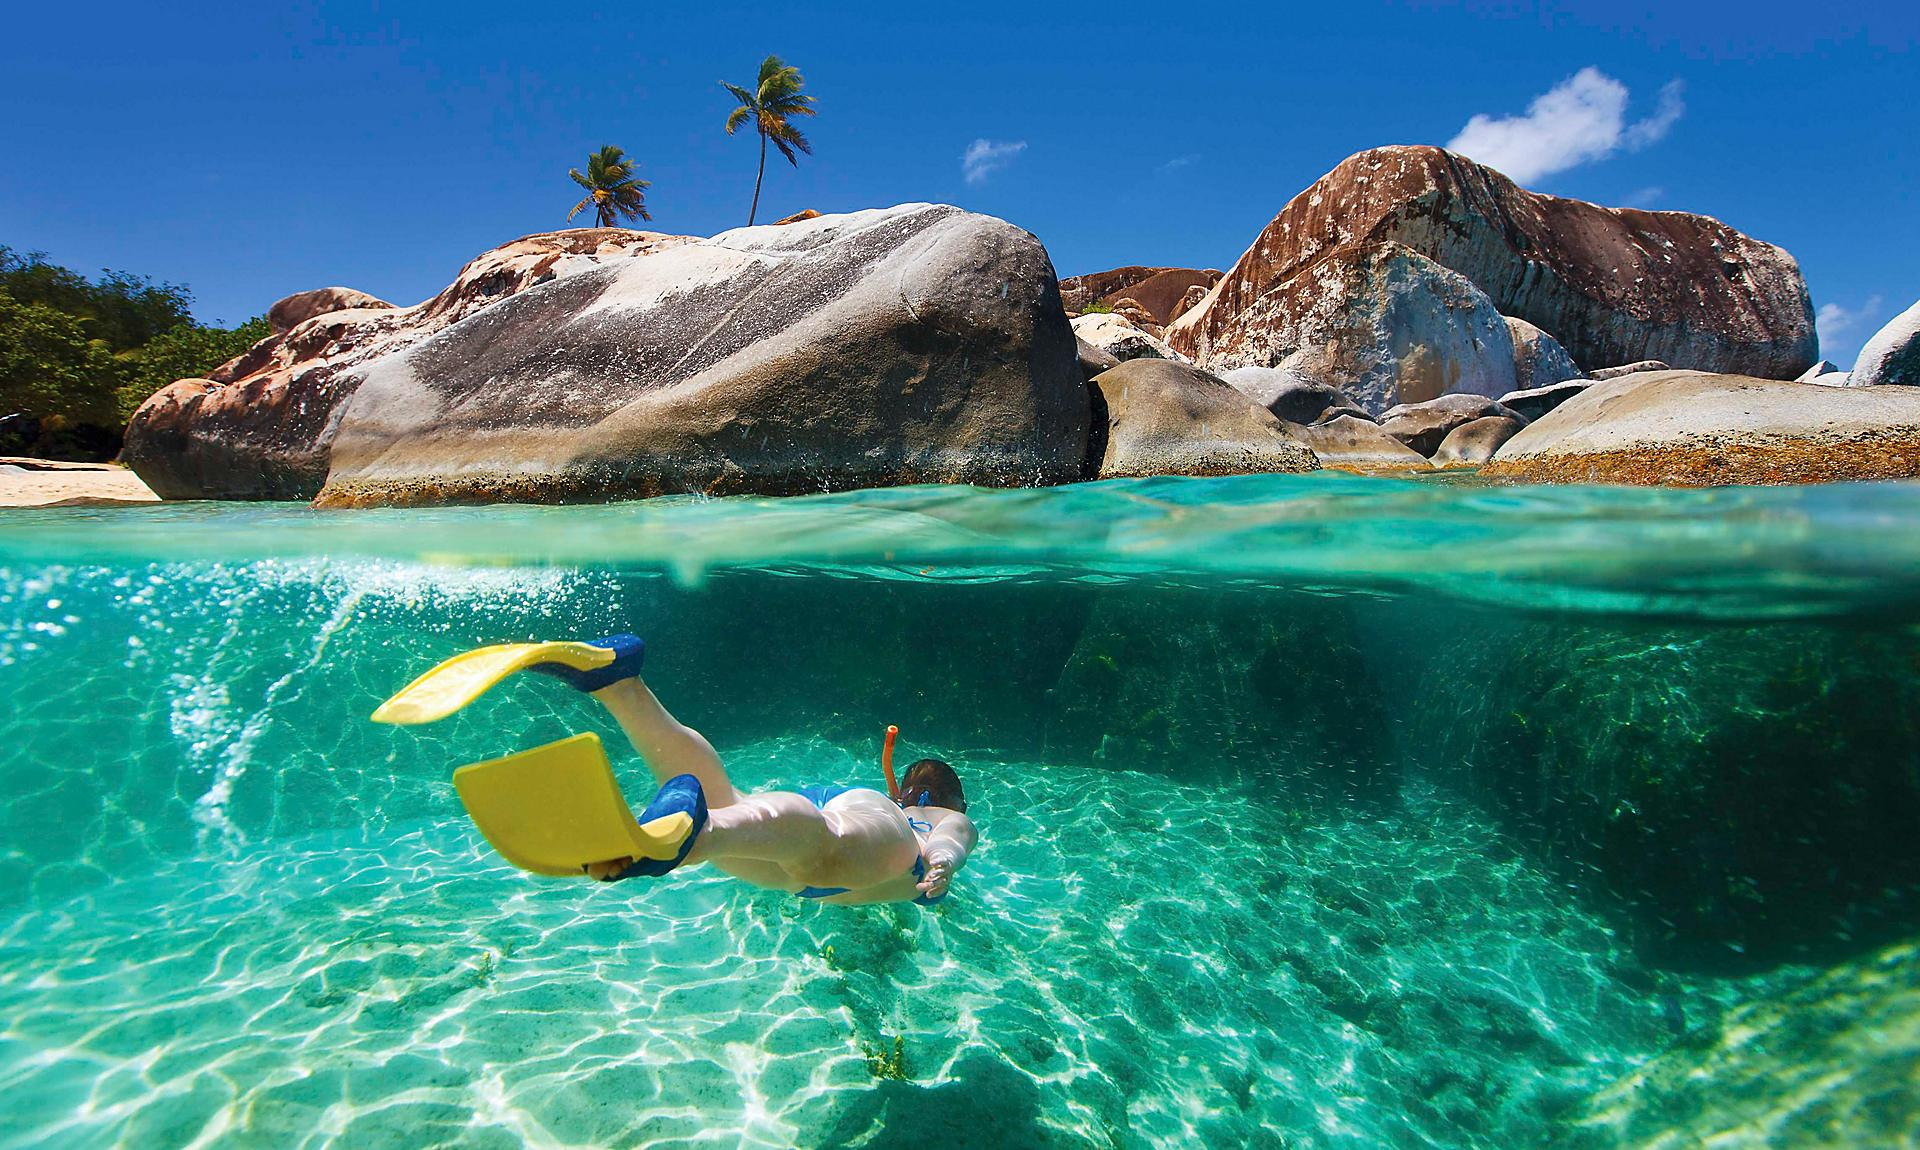 British Island, The Baths of Virgin Gorda, schnorchelnde Fraustyle=